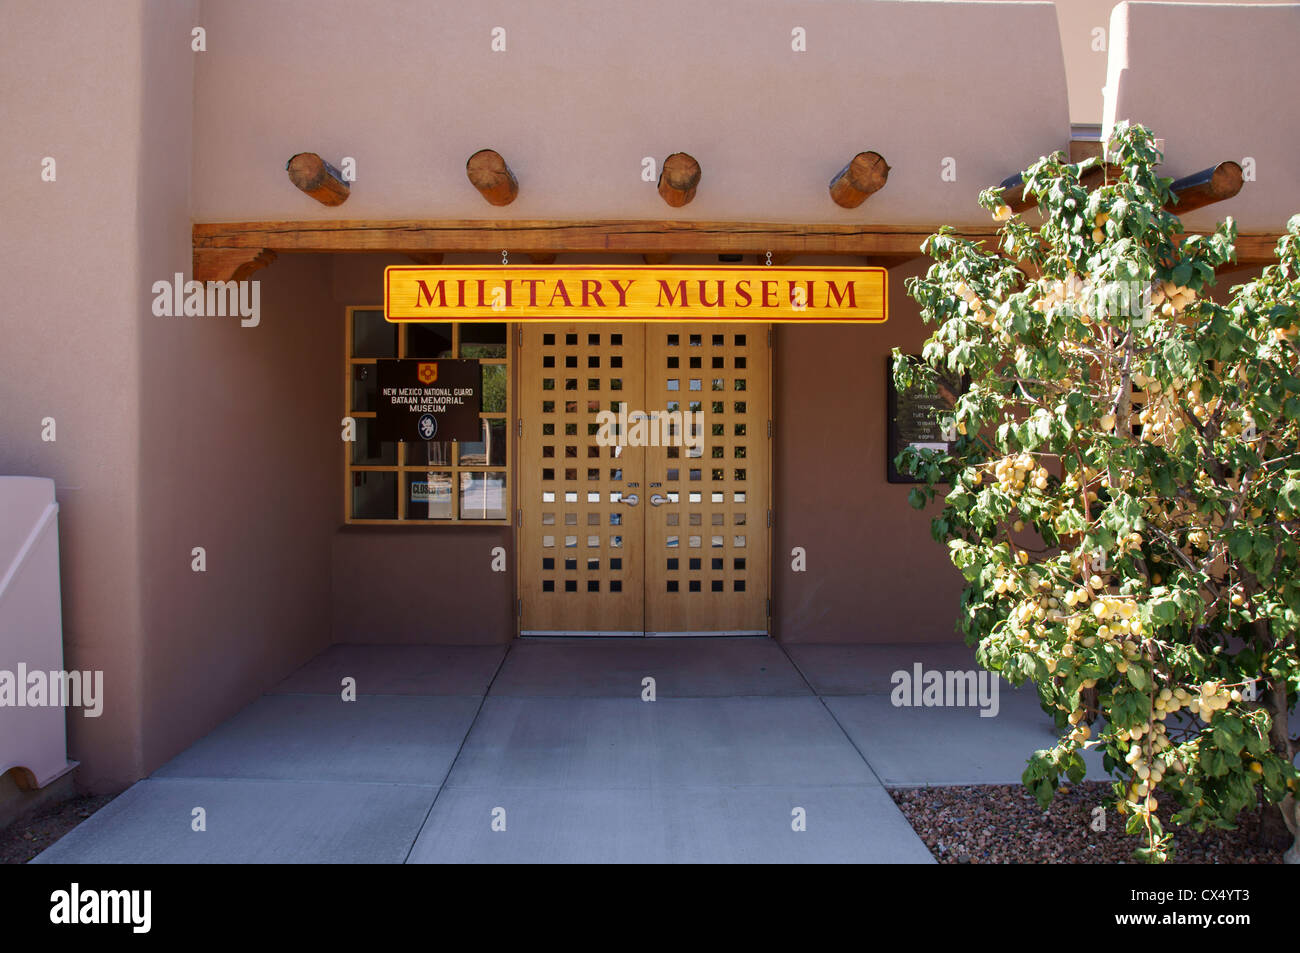 bataan memorial military museum and library santa fe new mexico nm statue monument cairn column inscription - Stock Image